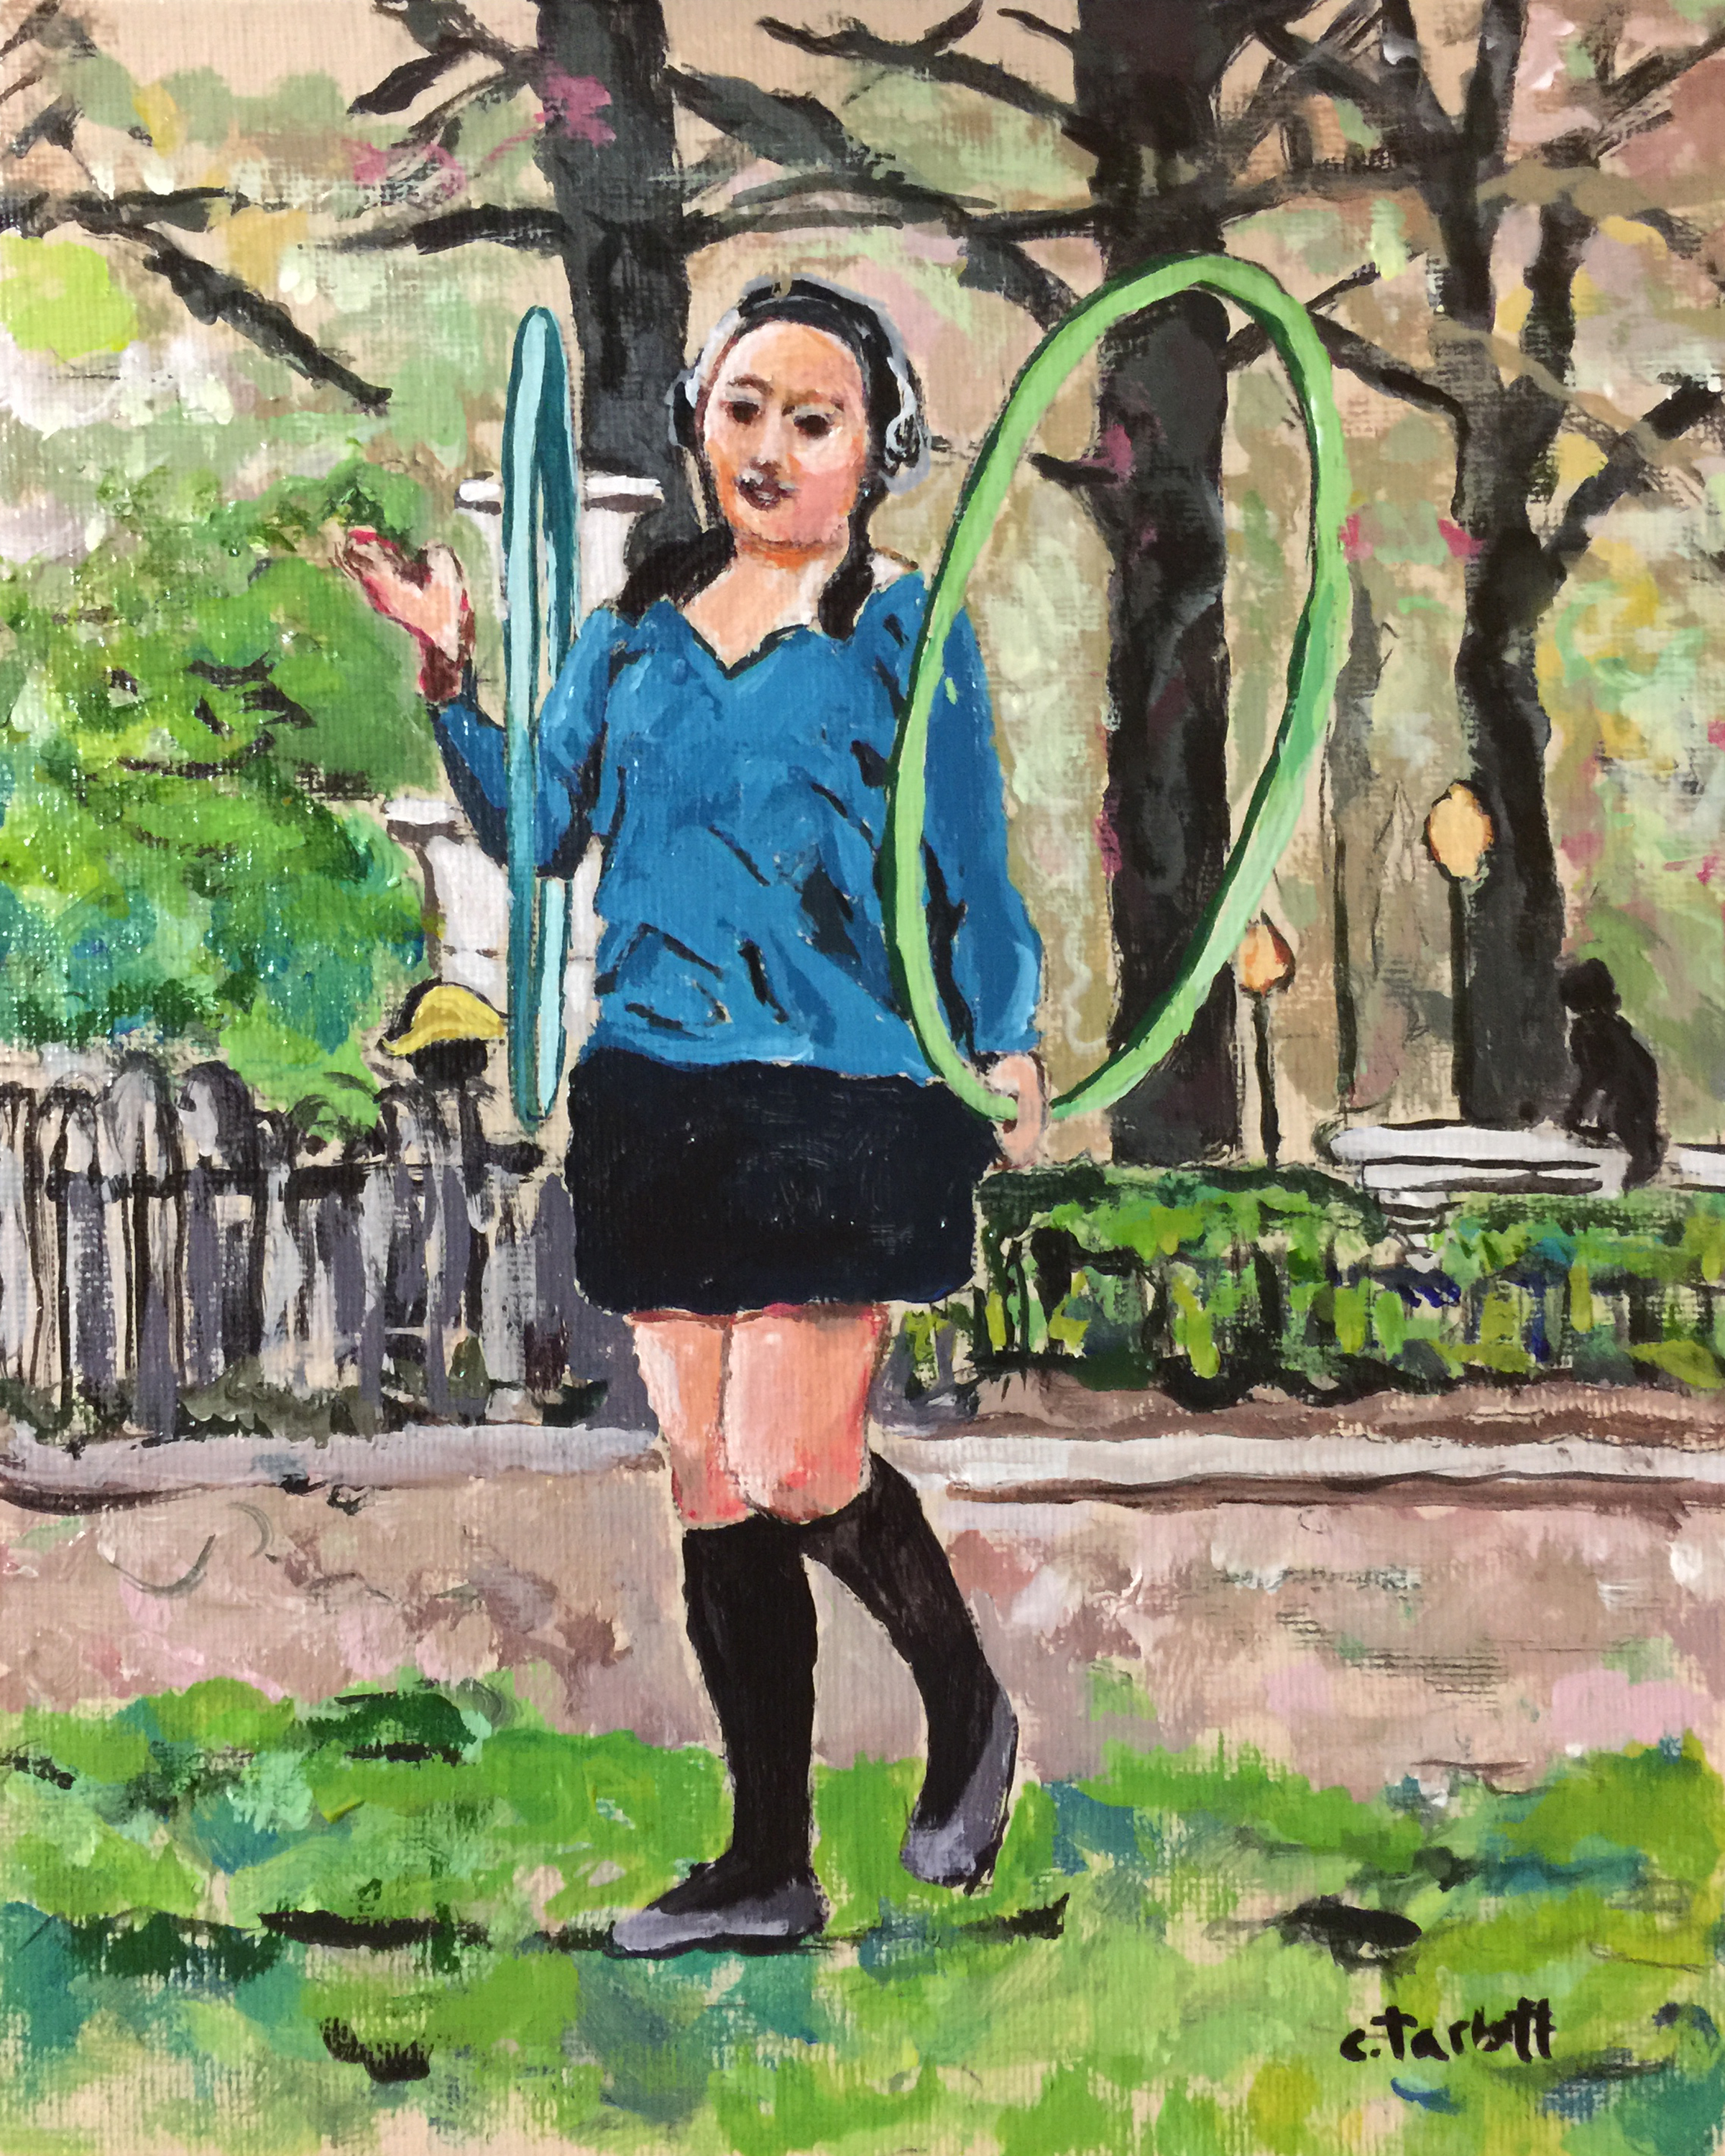 """Philadelphia Street Scene - Rittenhouse Square Park - """"Hooping at Rittenhouse Square"""" - 8x10 inches. Acrylic on Canvas Panel."""